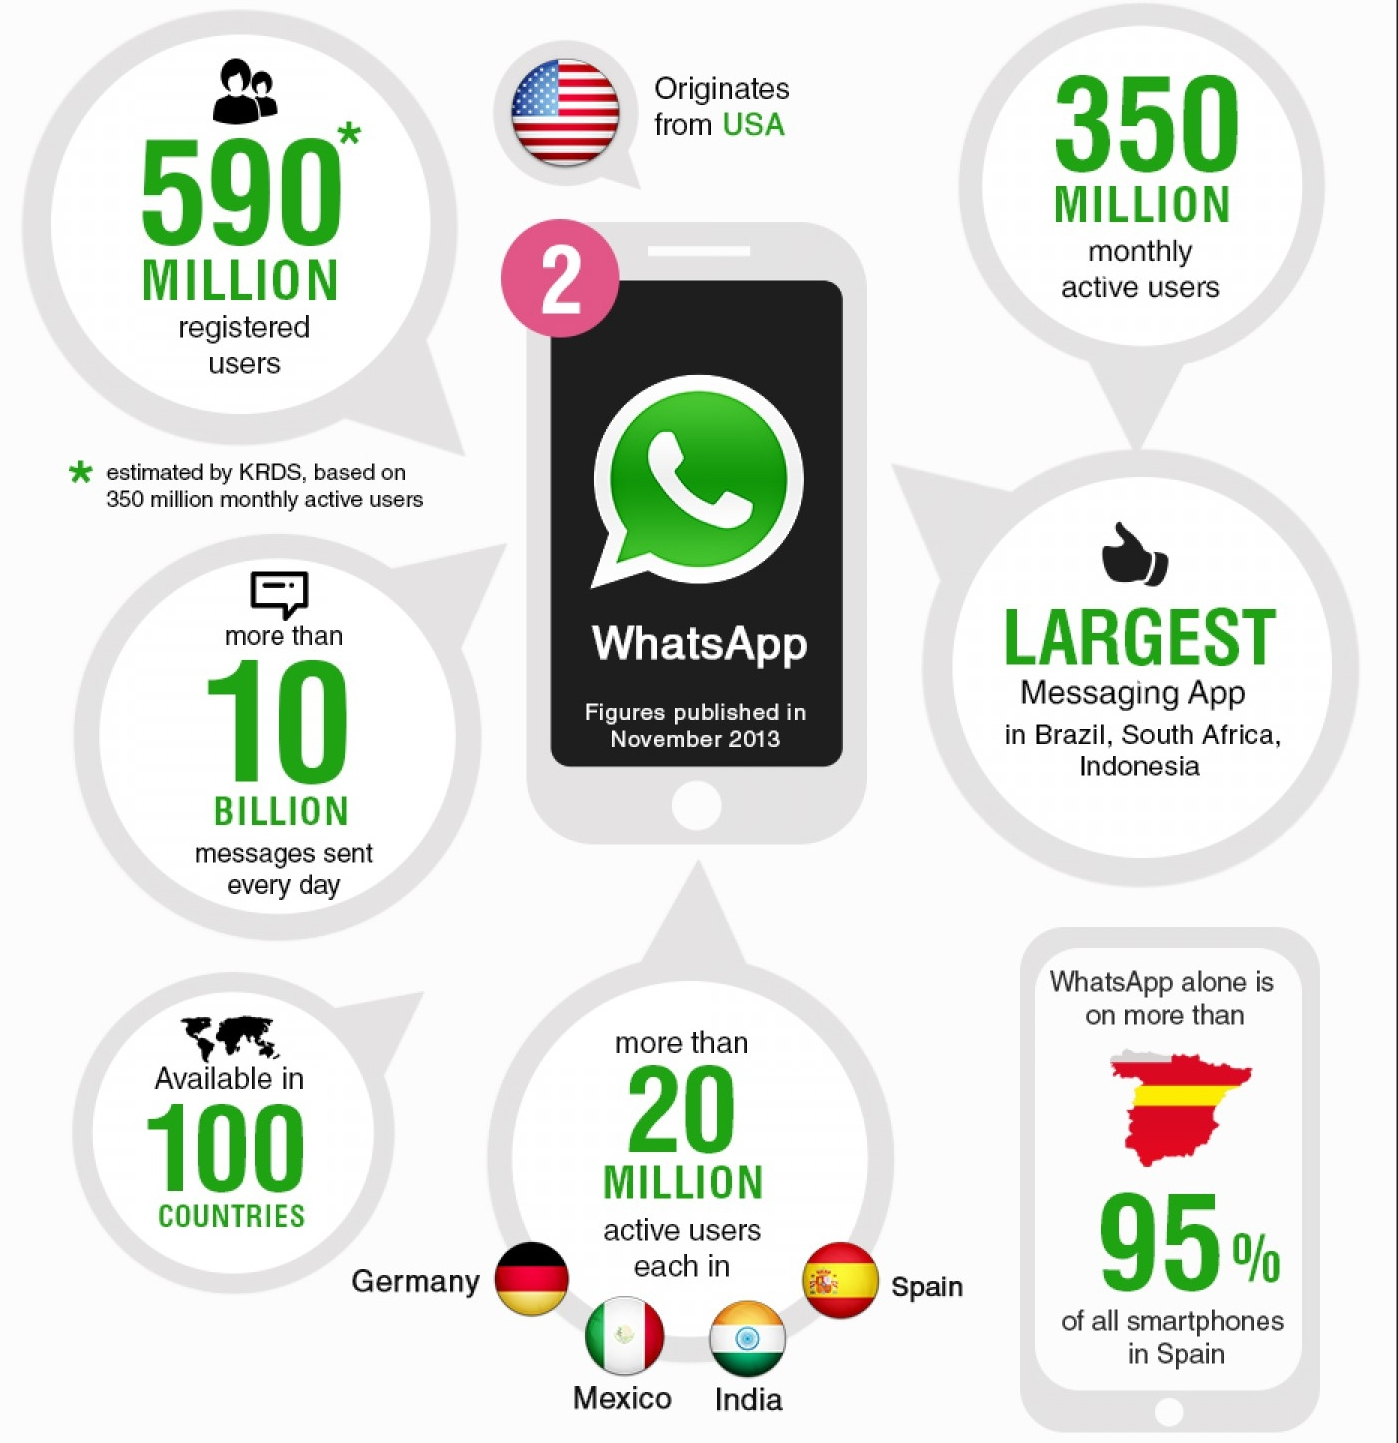 How to Use WhatsApp for Business Development? - Image 1